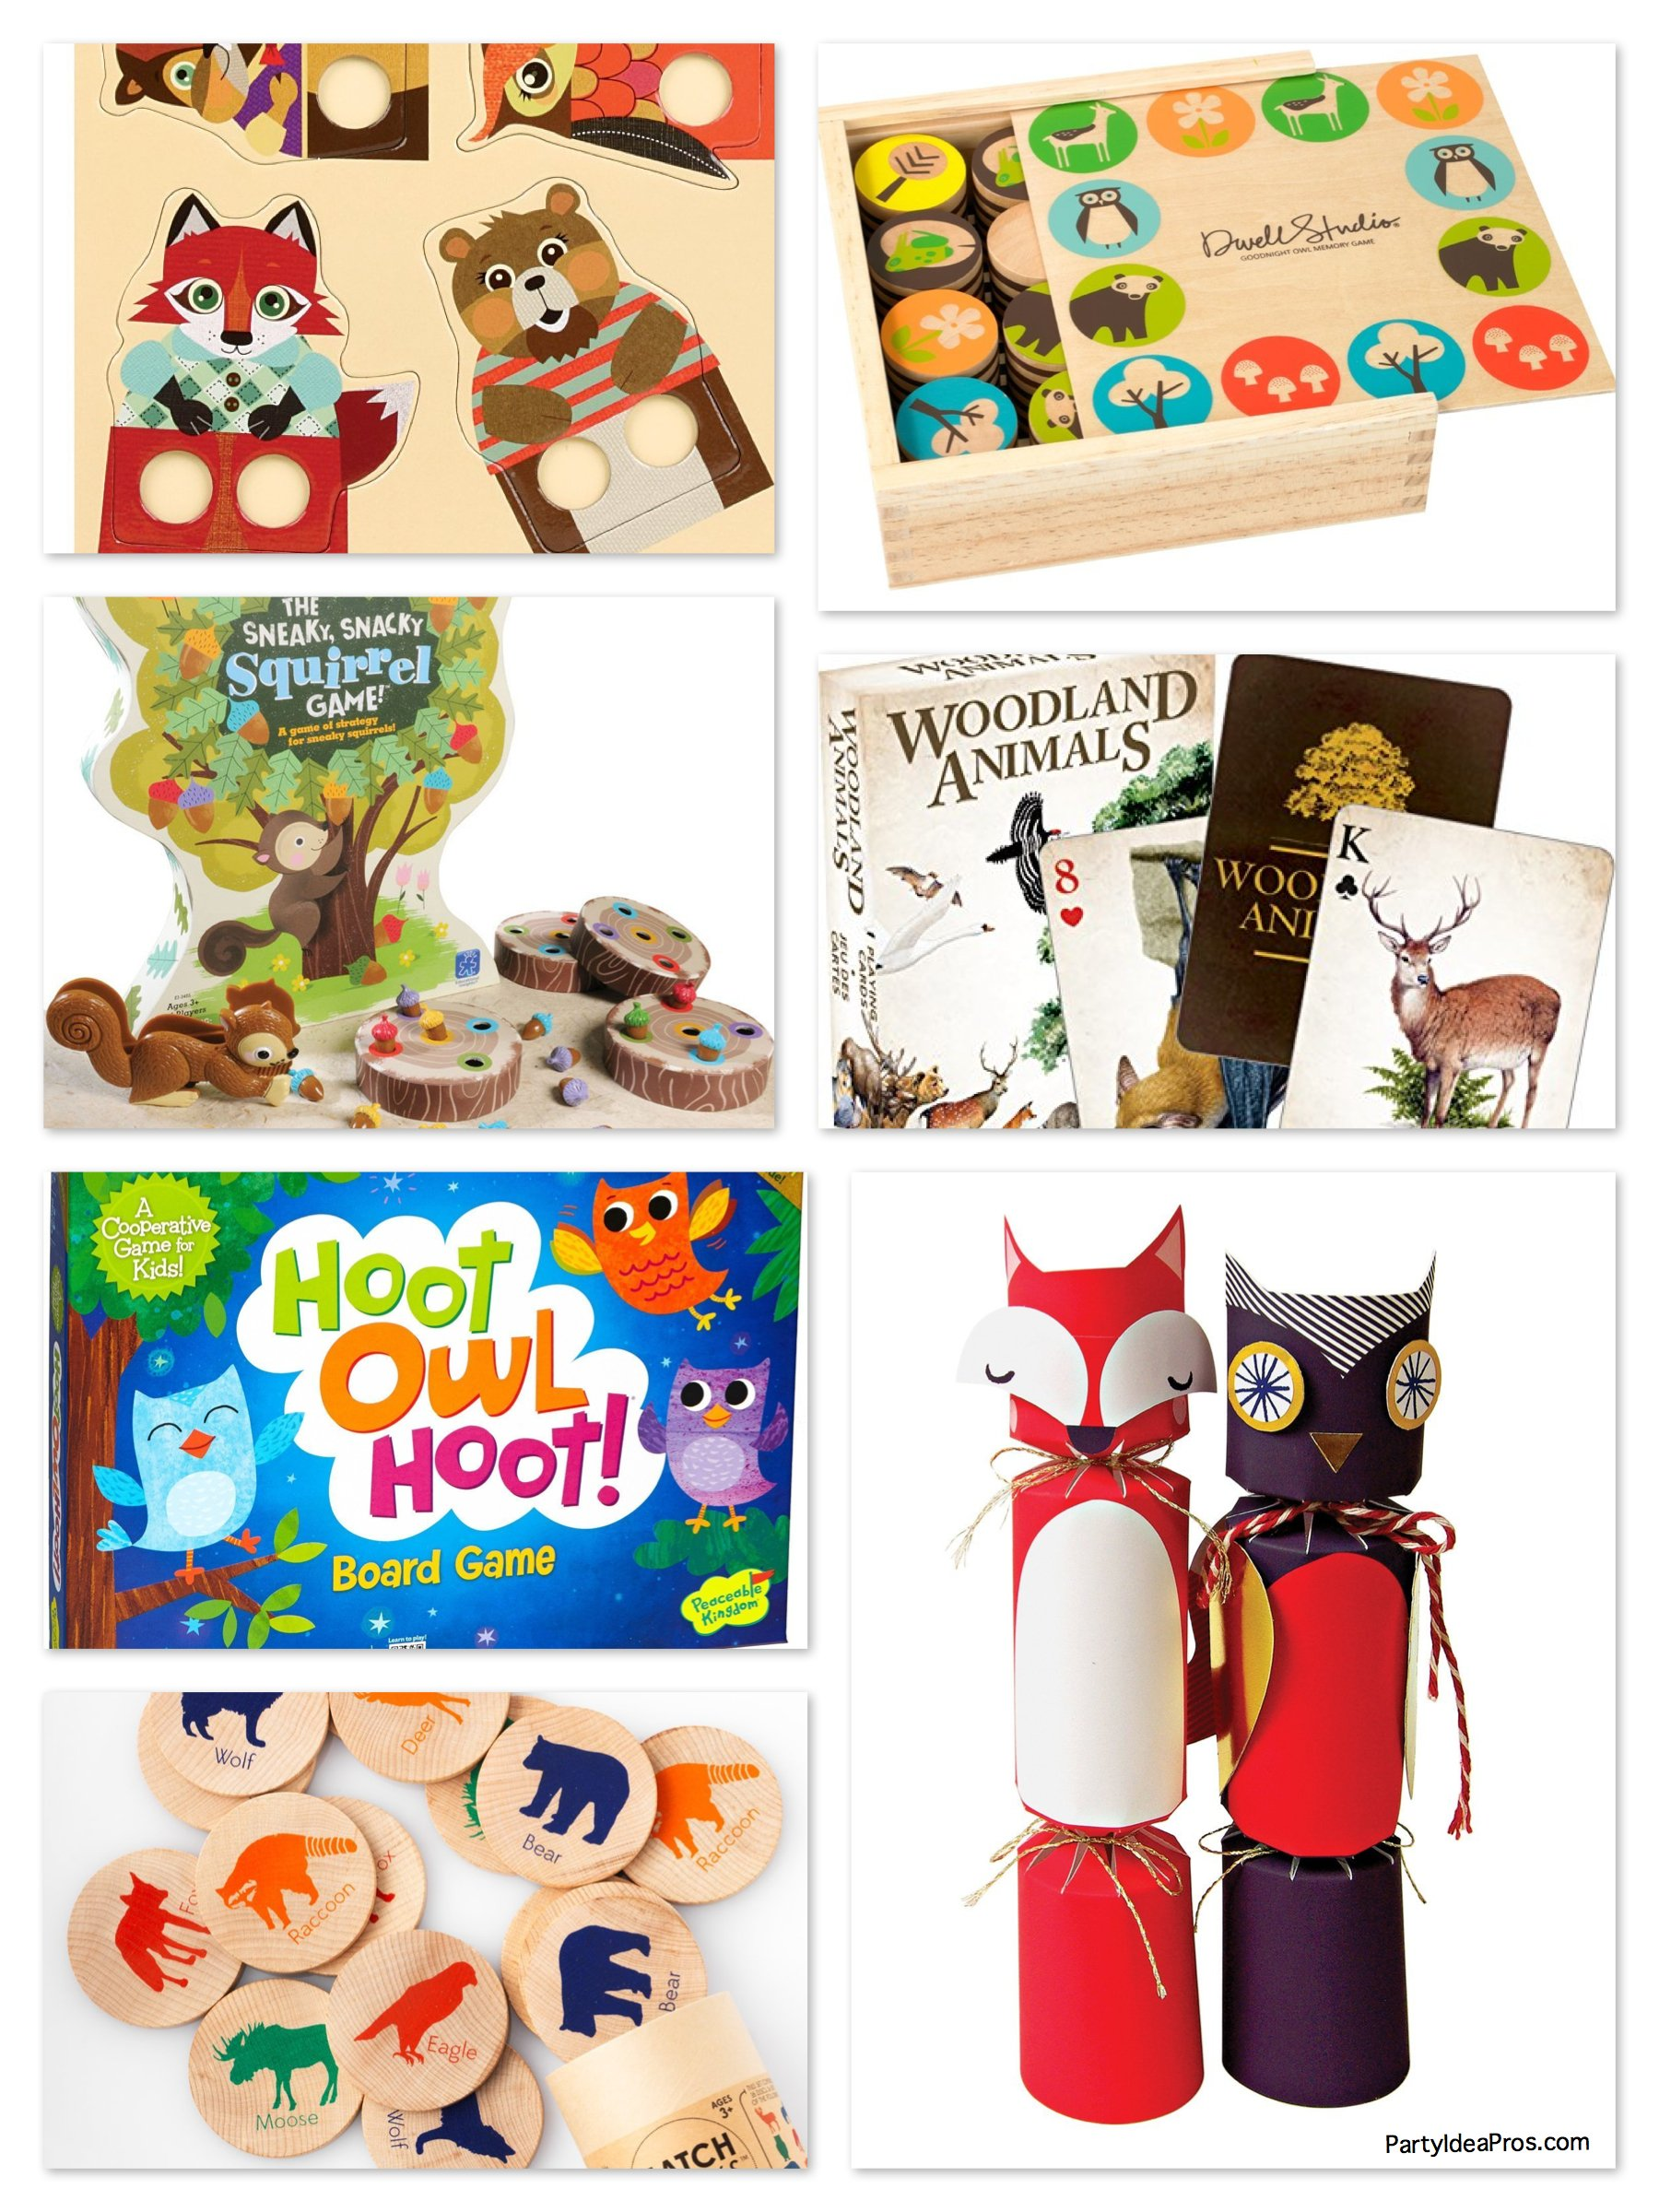 Fox & woodland animal theme games activities